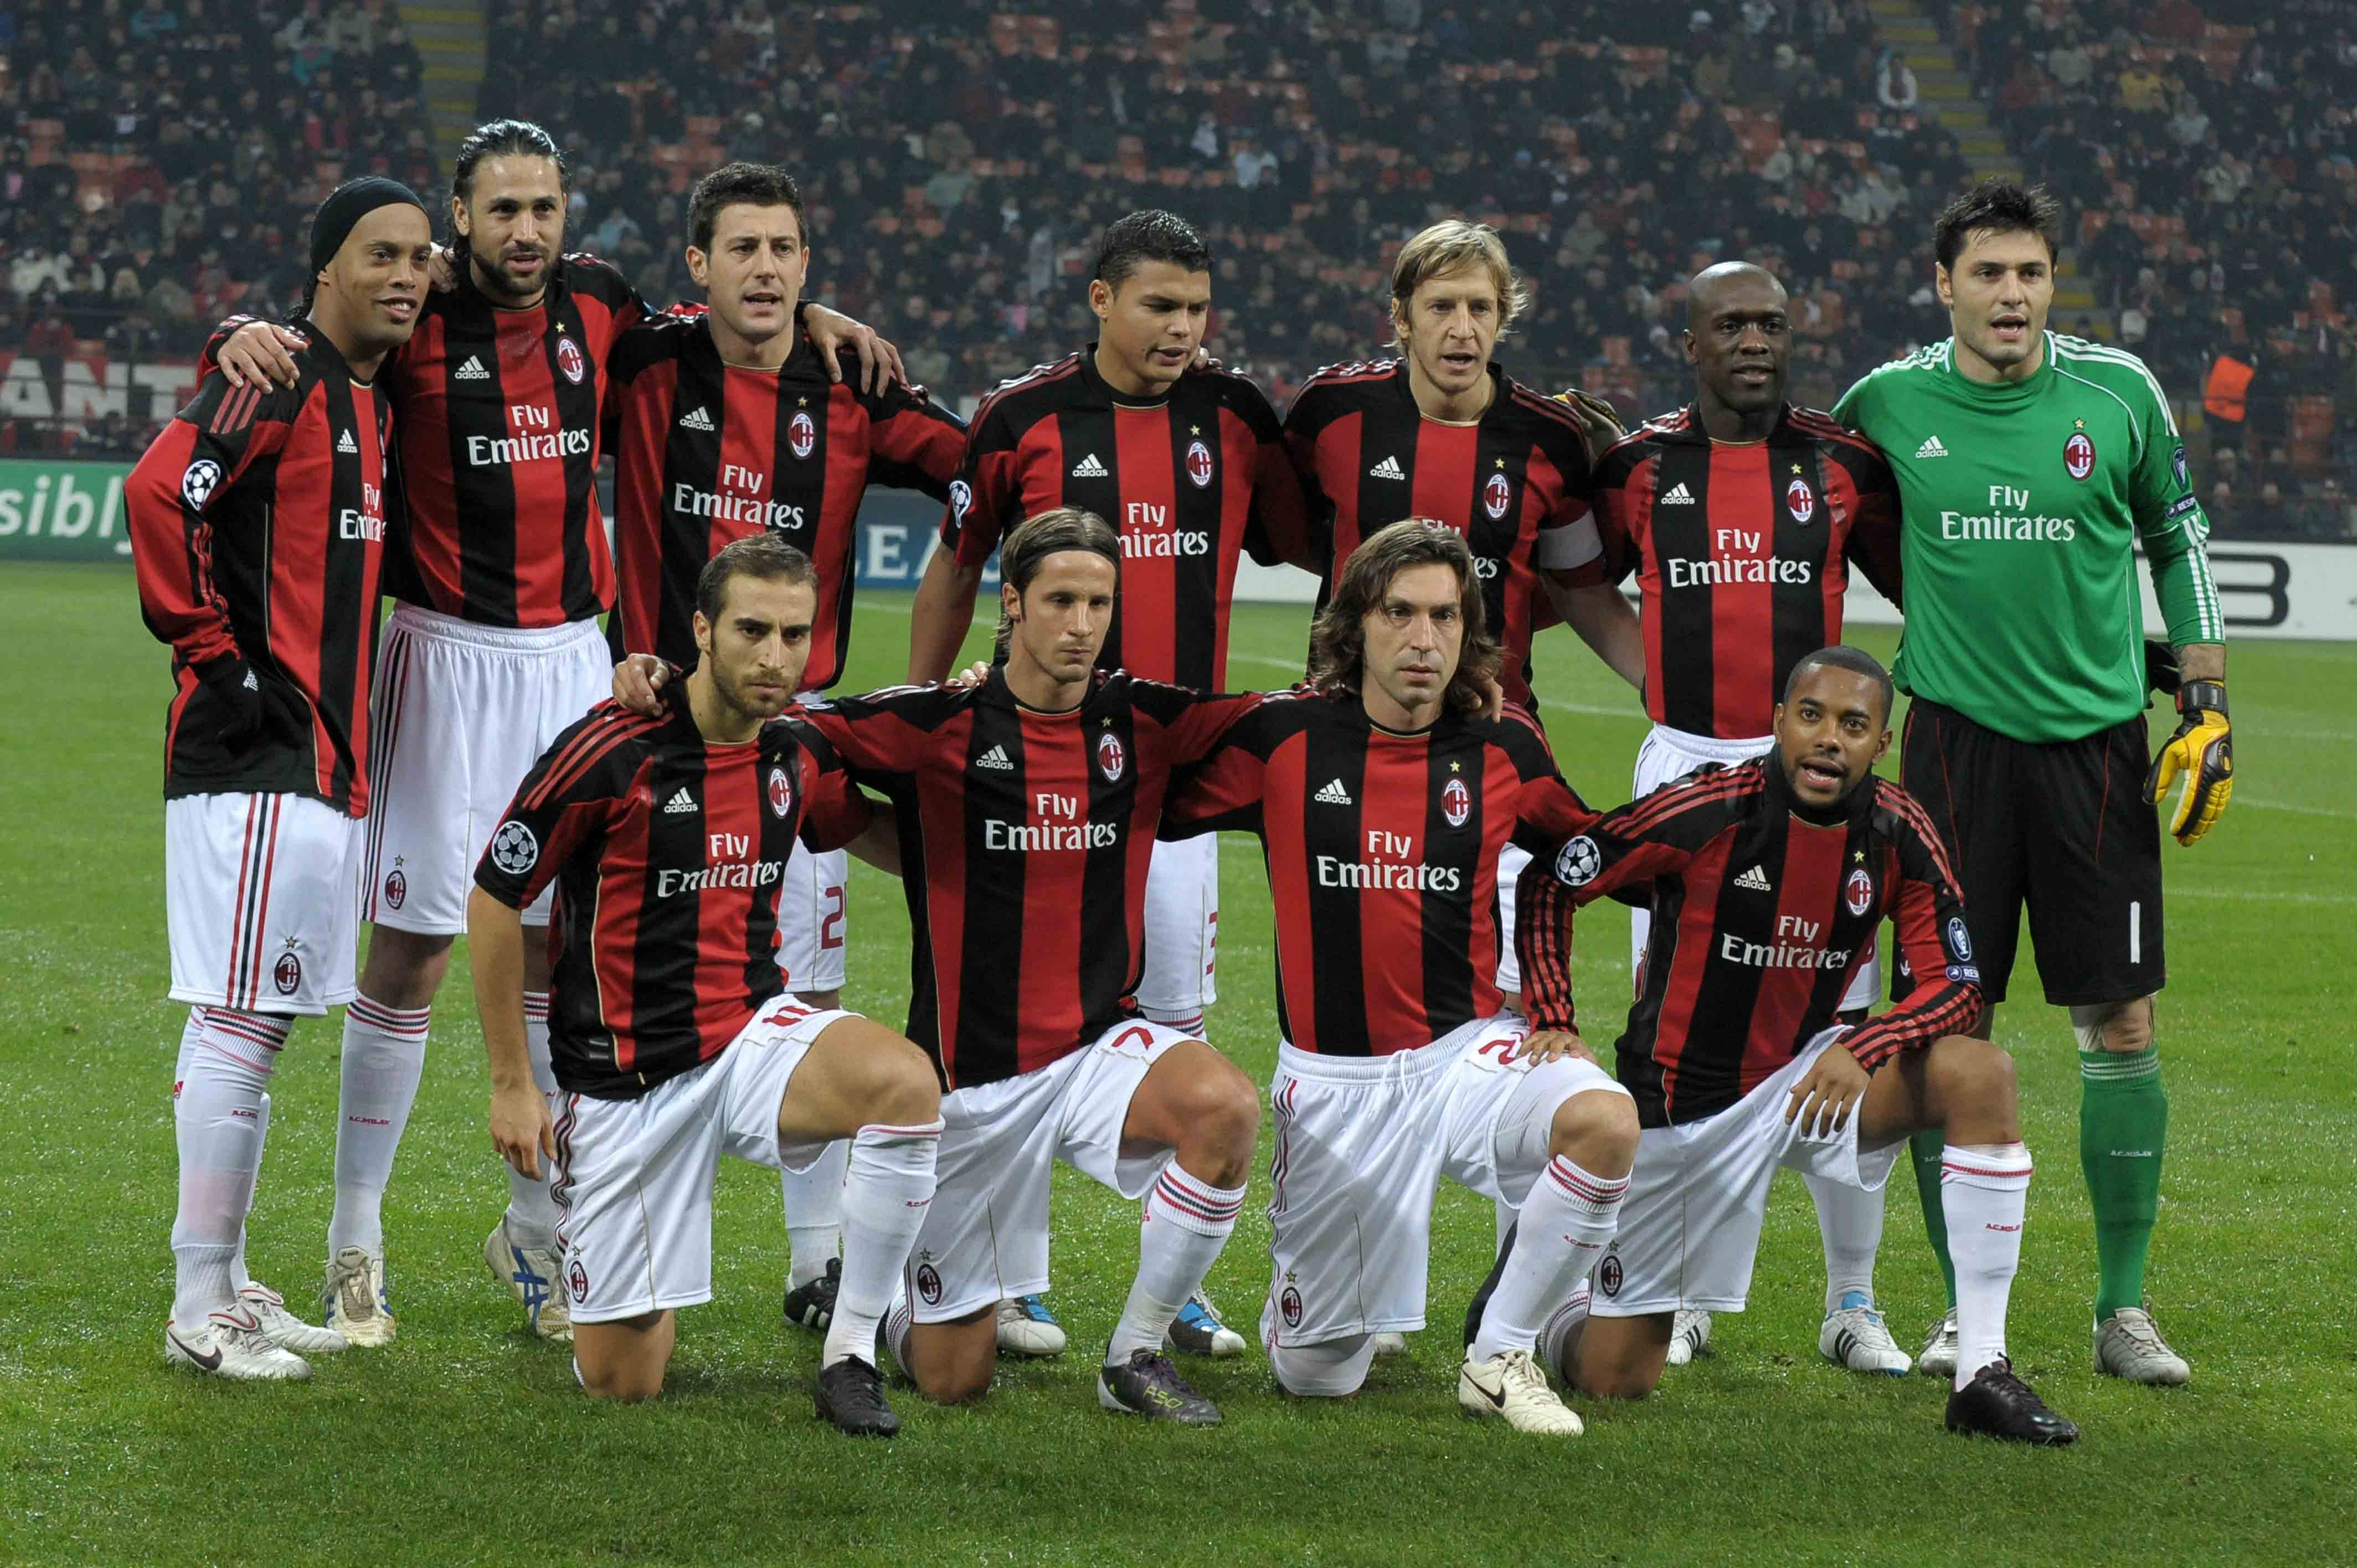 ac milan defenders 2010 camaro - photo#4